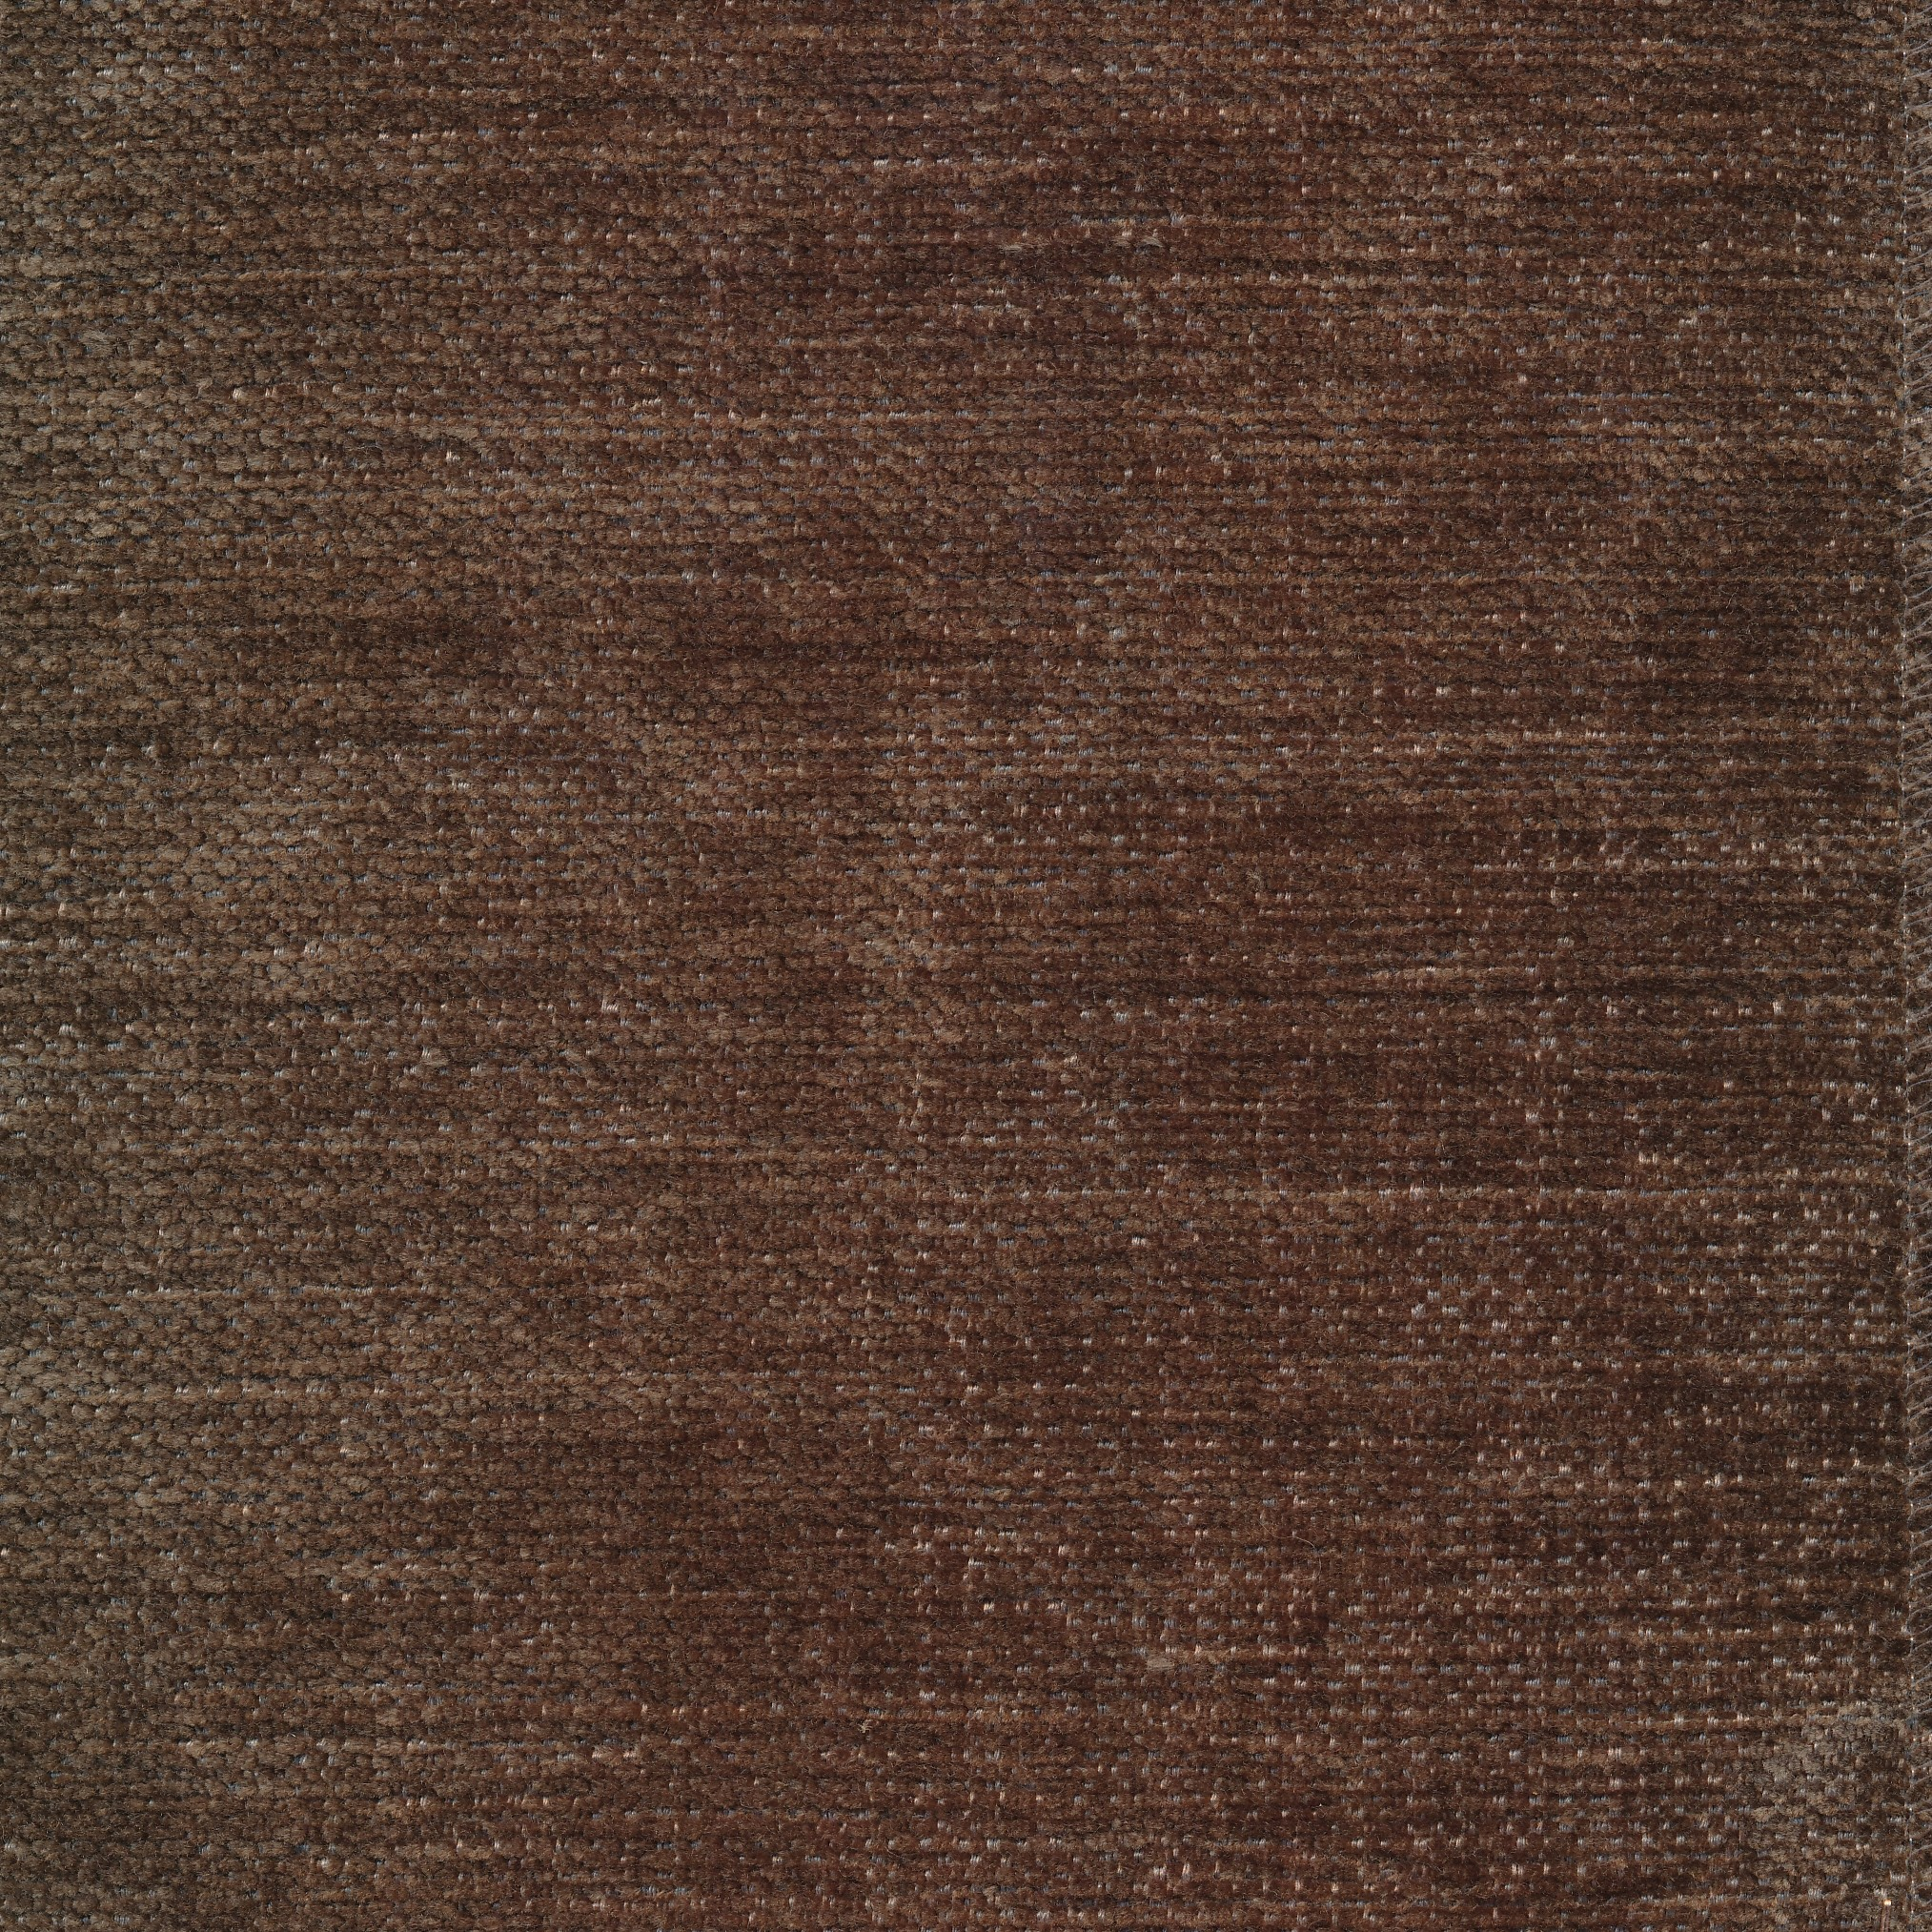 IMAGE TAUPE